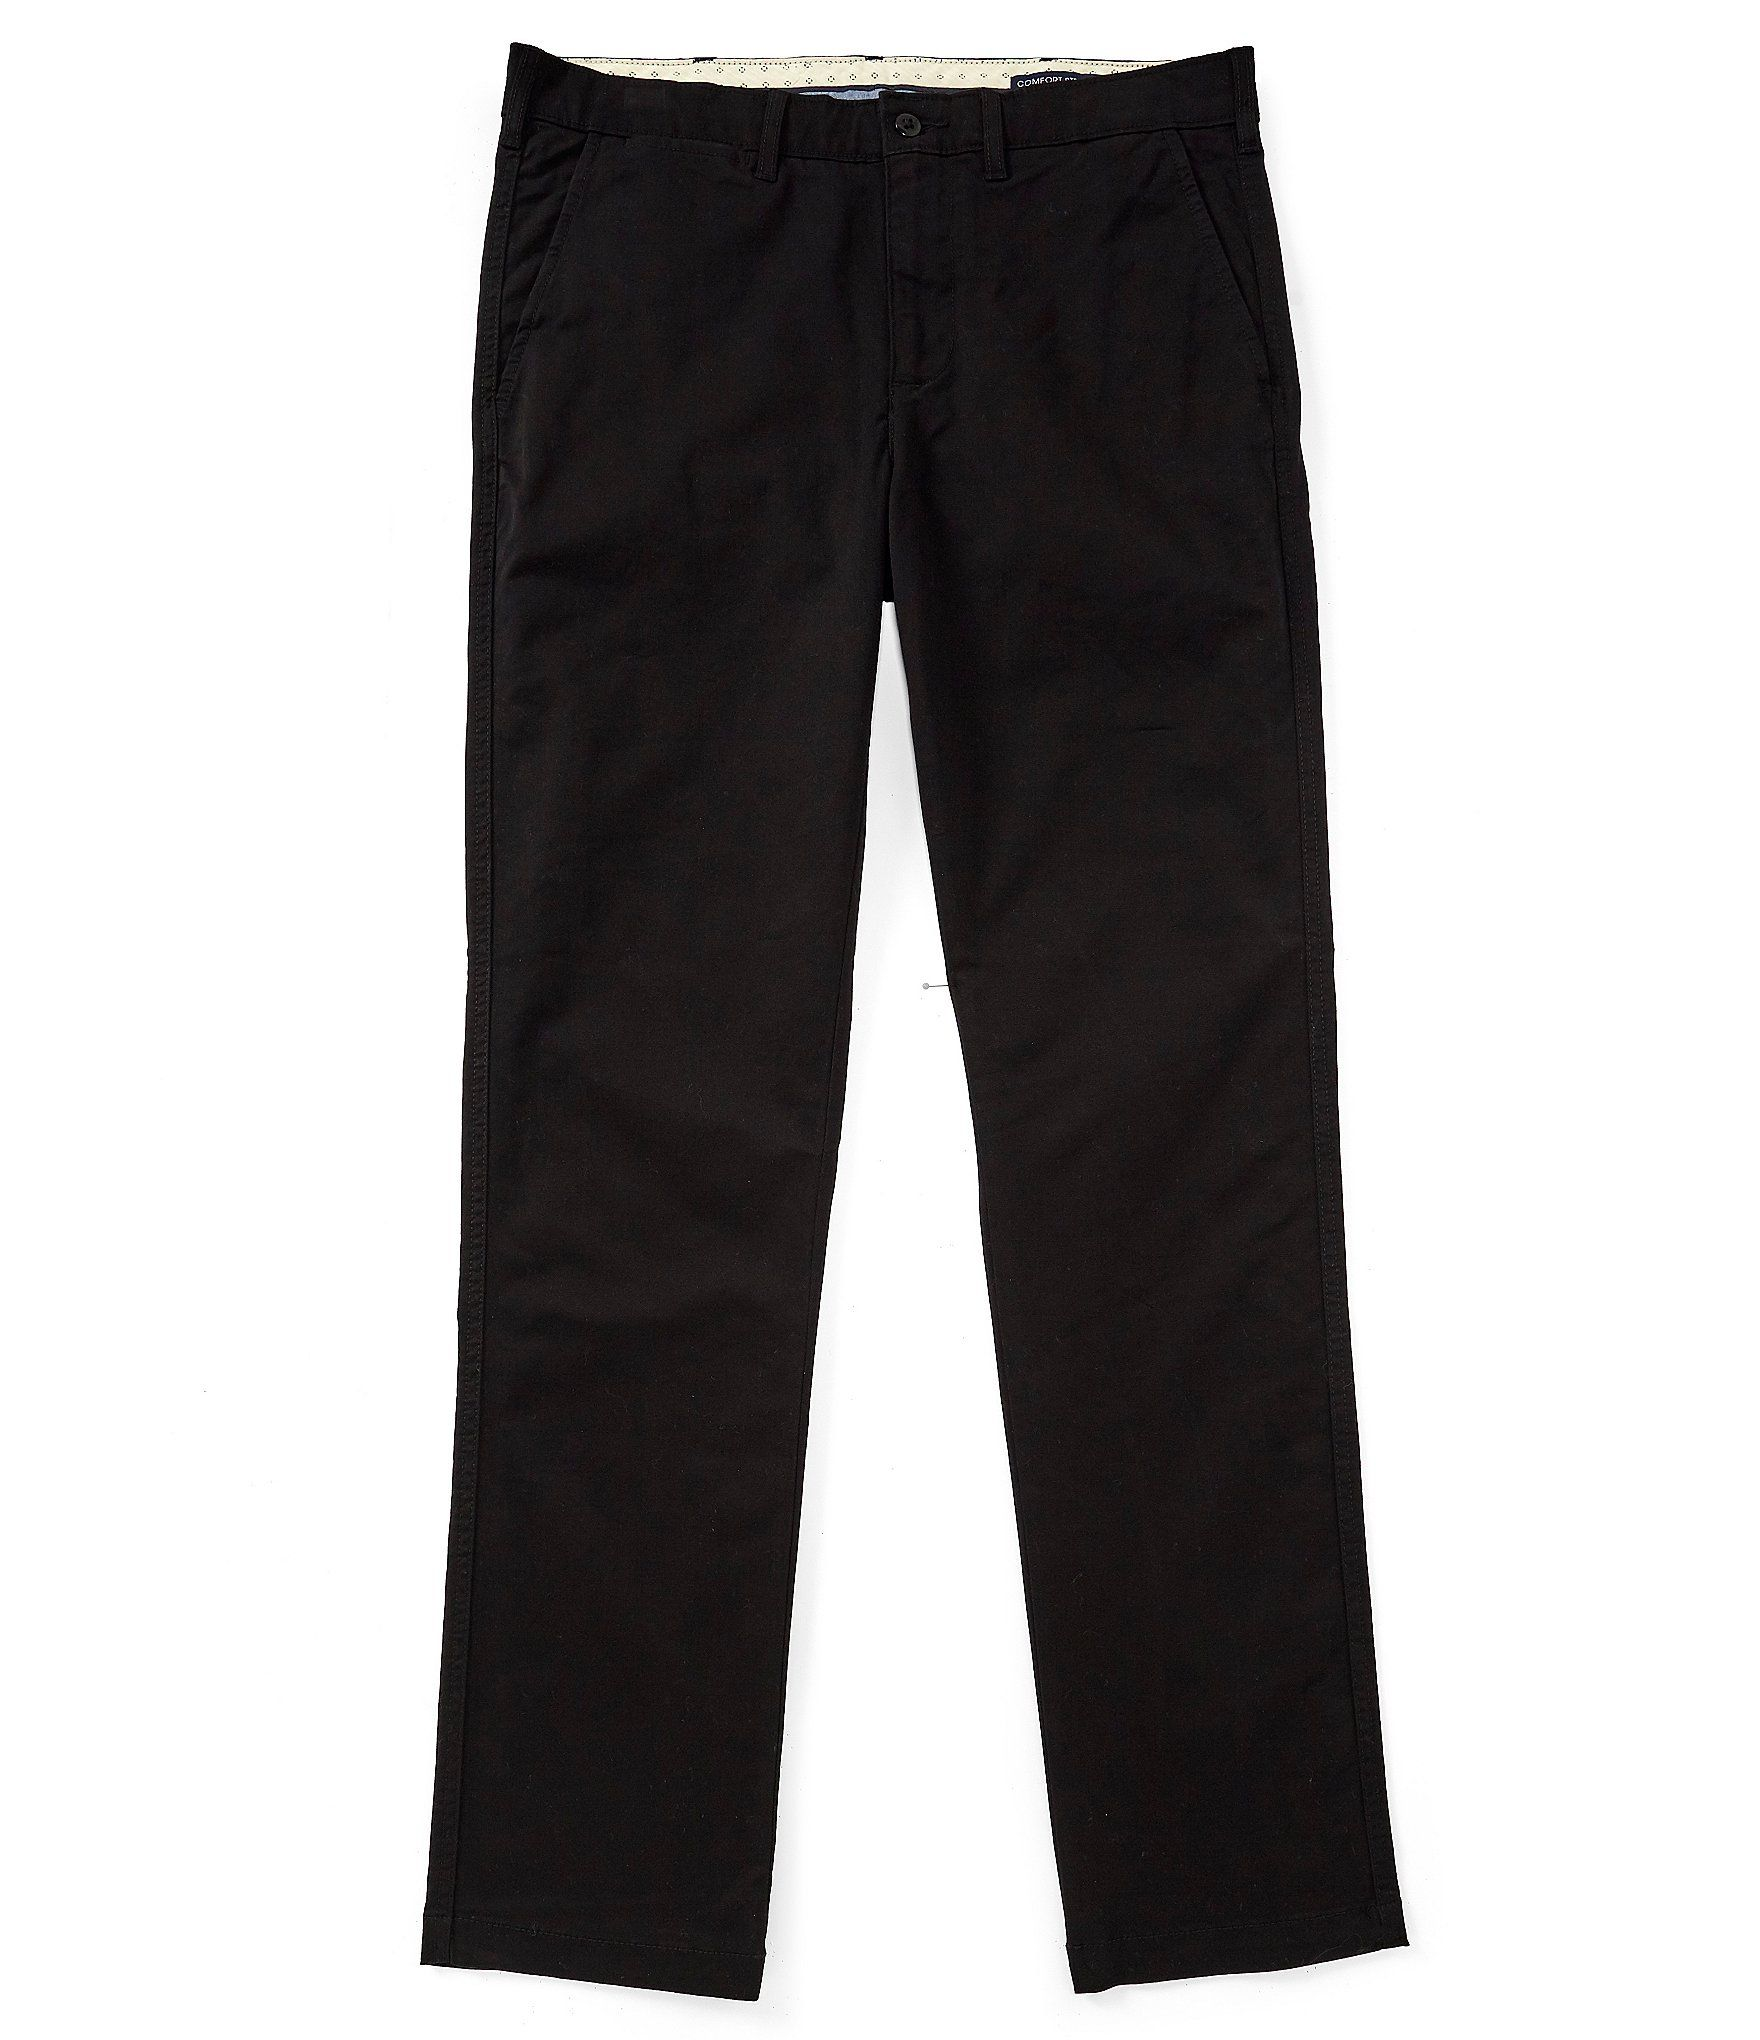 Cremieux Soho Slim-Fit Flat-Front Twill Comfort Stretch Casual Pants – Black 32 32